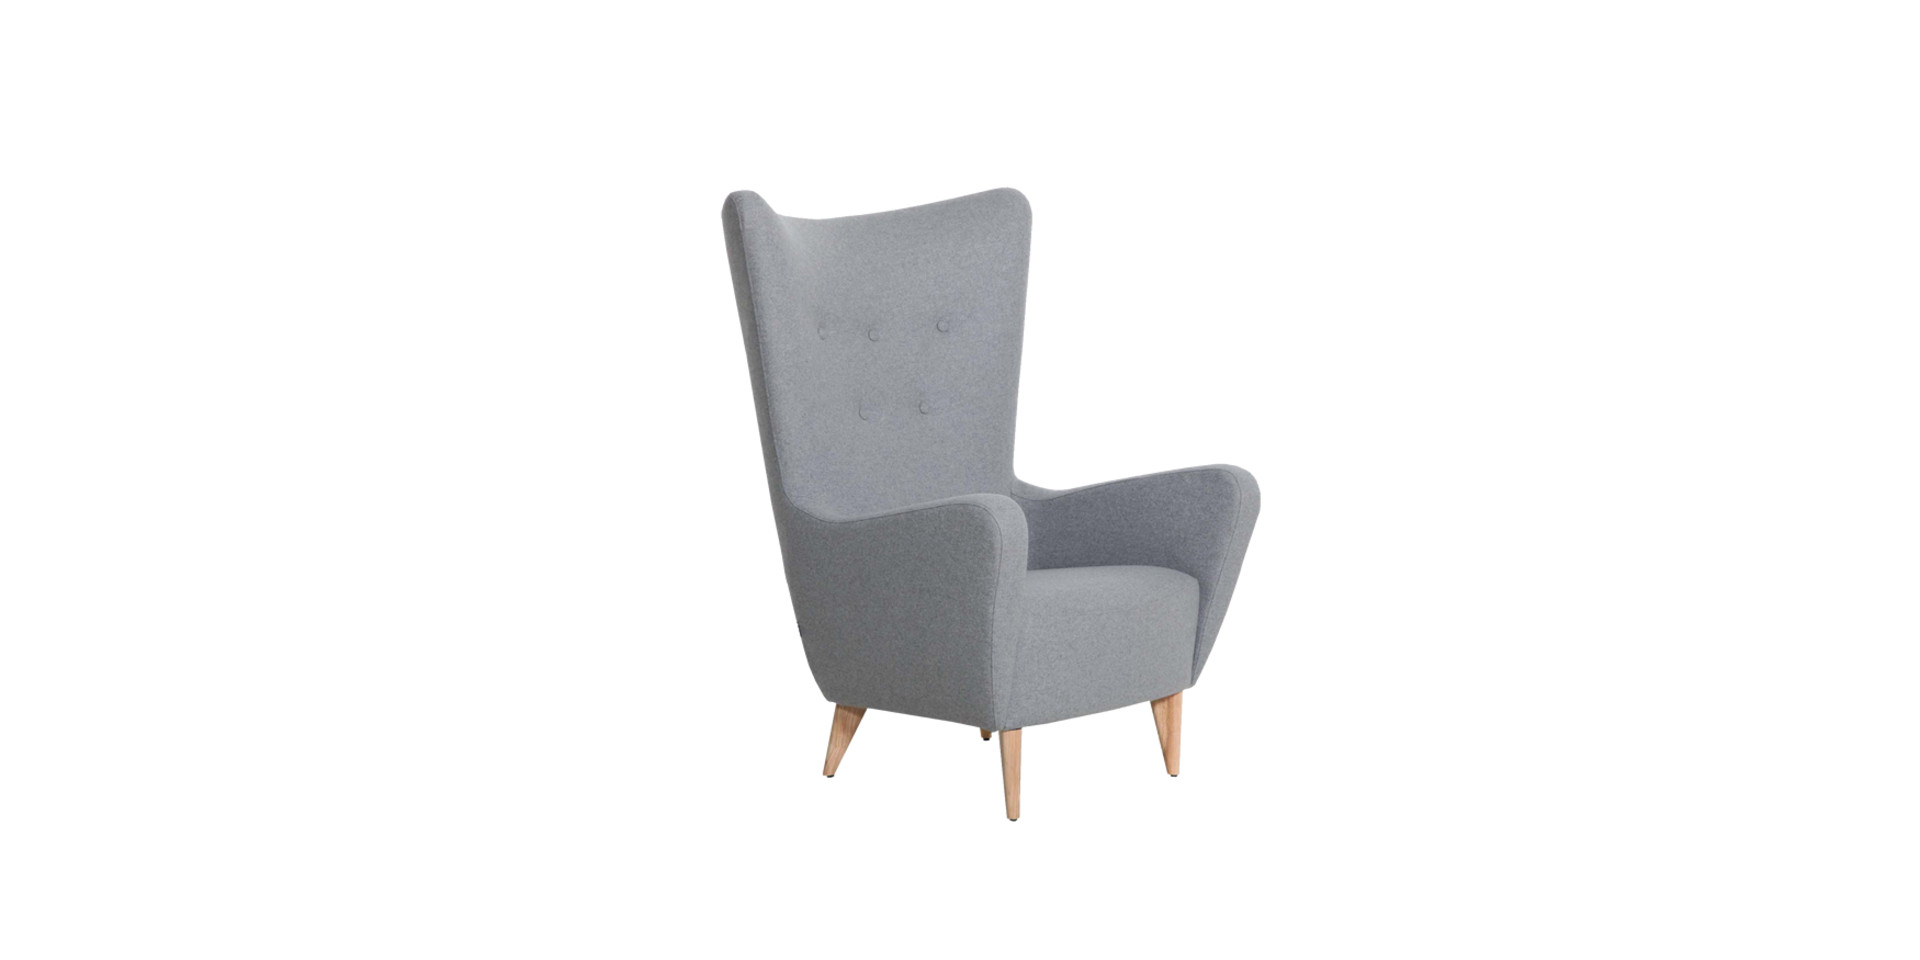 sits-kato-fauteuil-armchair_buttons_panno1000_light_grey_2